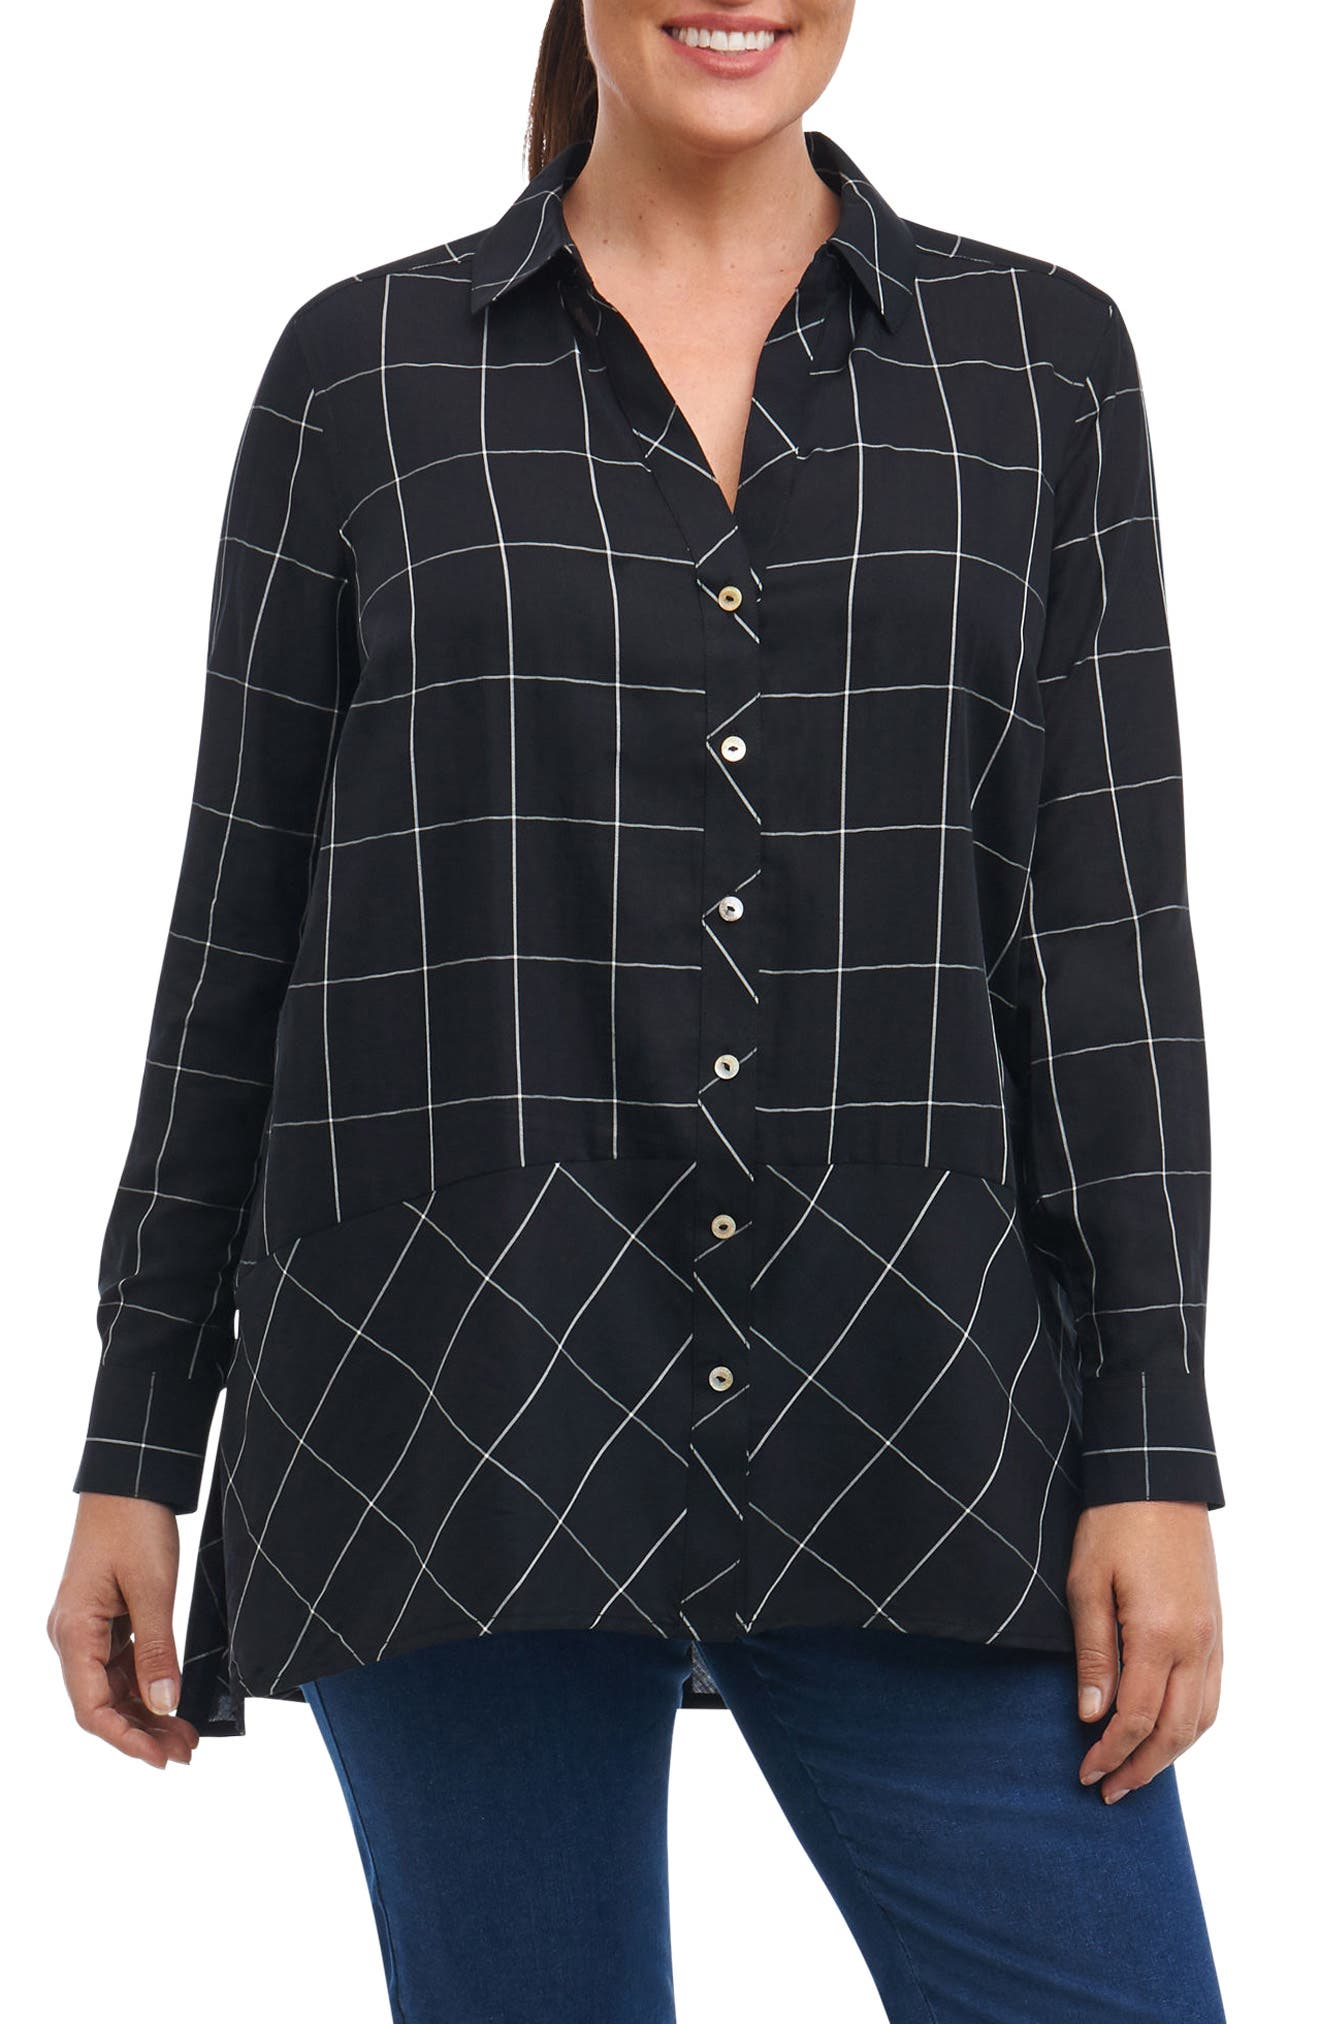 Alternate Image 1 Selected - Foxcroft Daniela Windowpane Tunic Shirt (Plus Size)